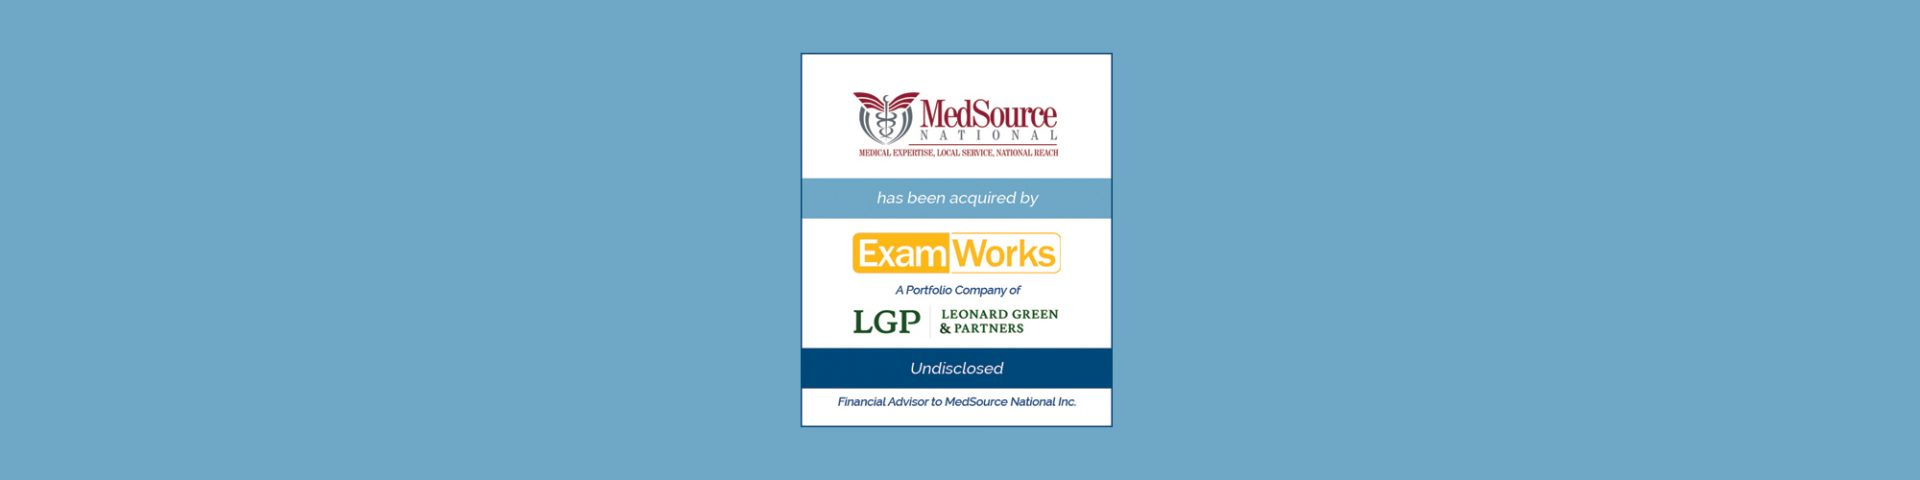 Bailey Southwell & Co. Represents MedSource National Sale ExamWorks